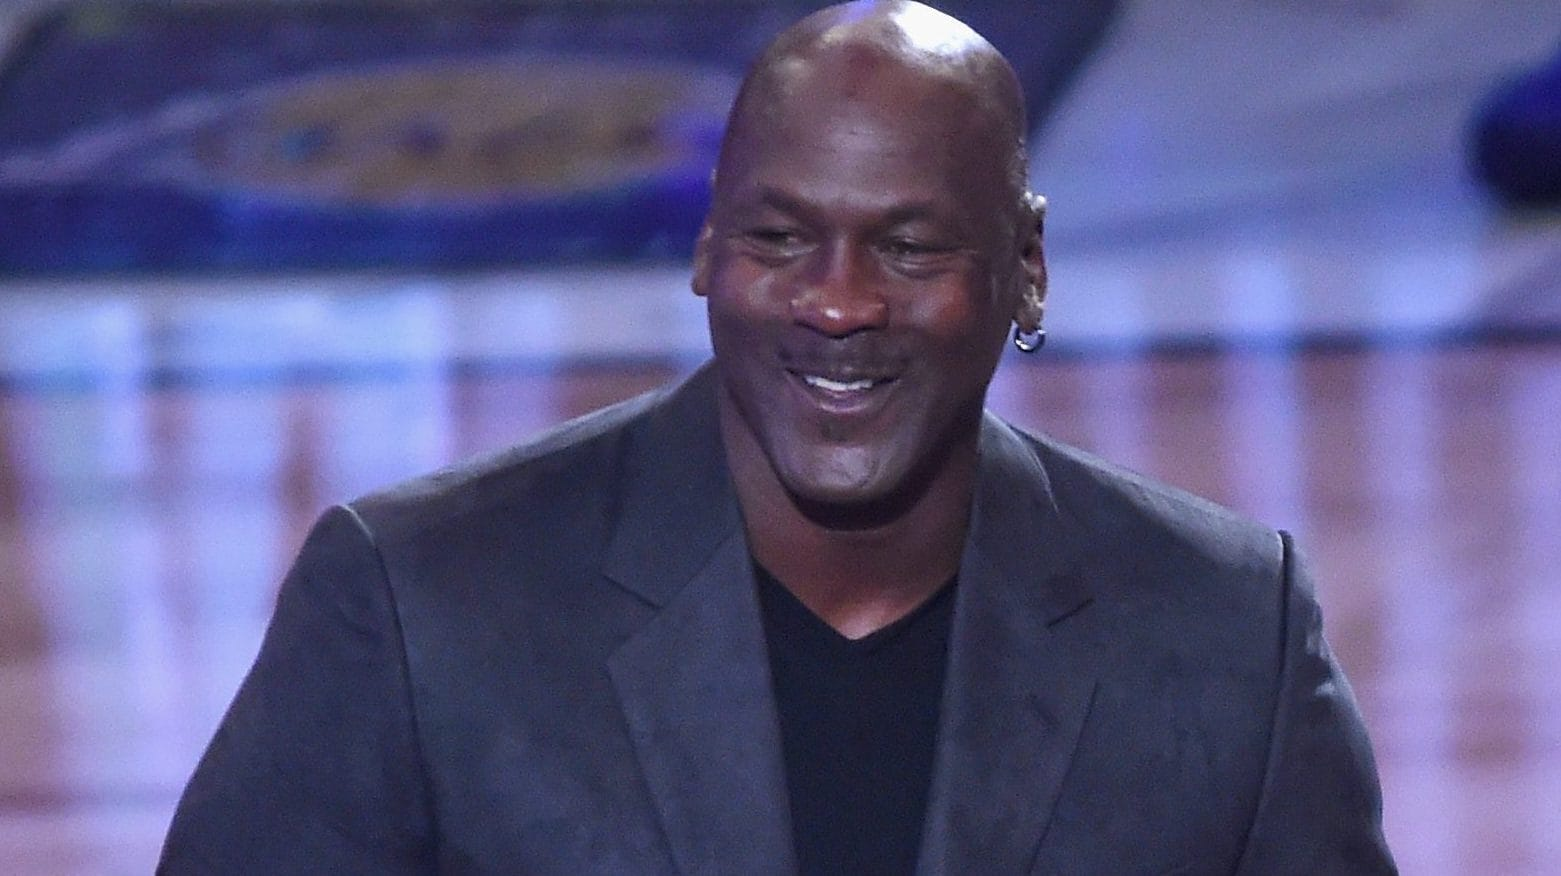 Michael Jordan walked out of drug fueled Chicago Bulls party as a rookie - TheGrio